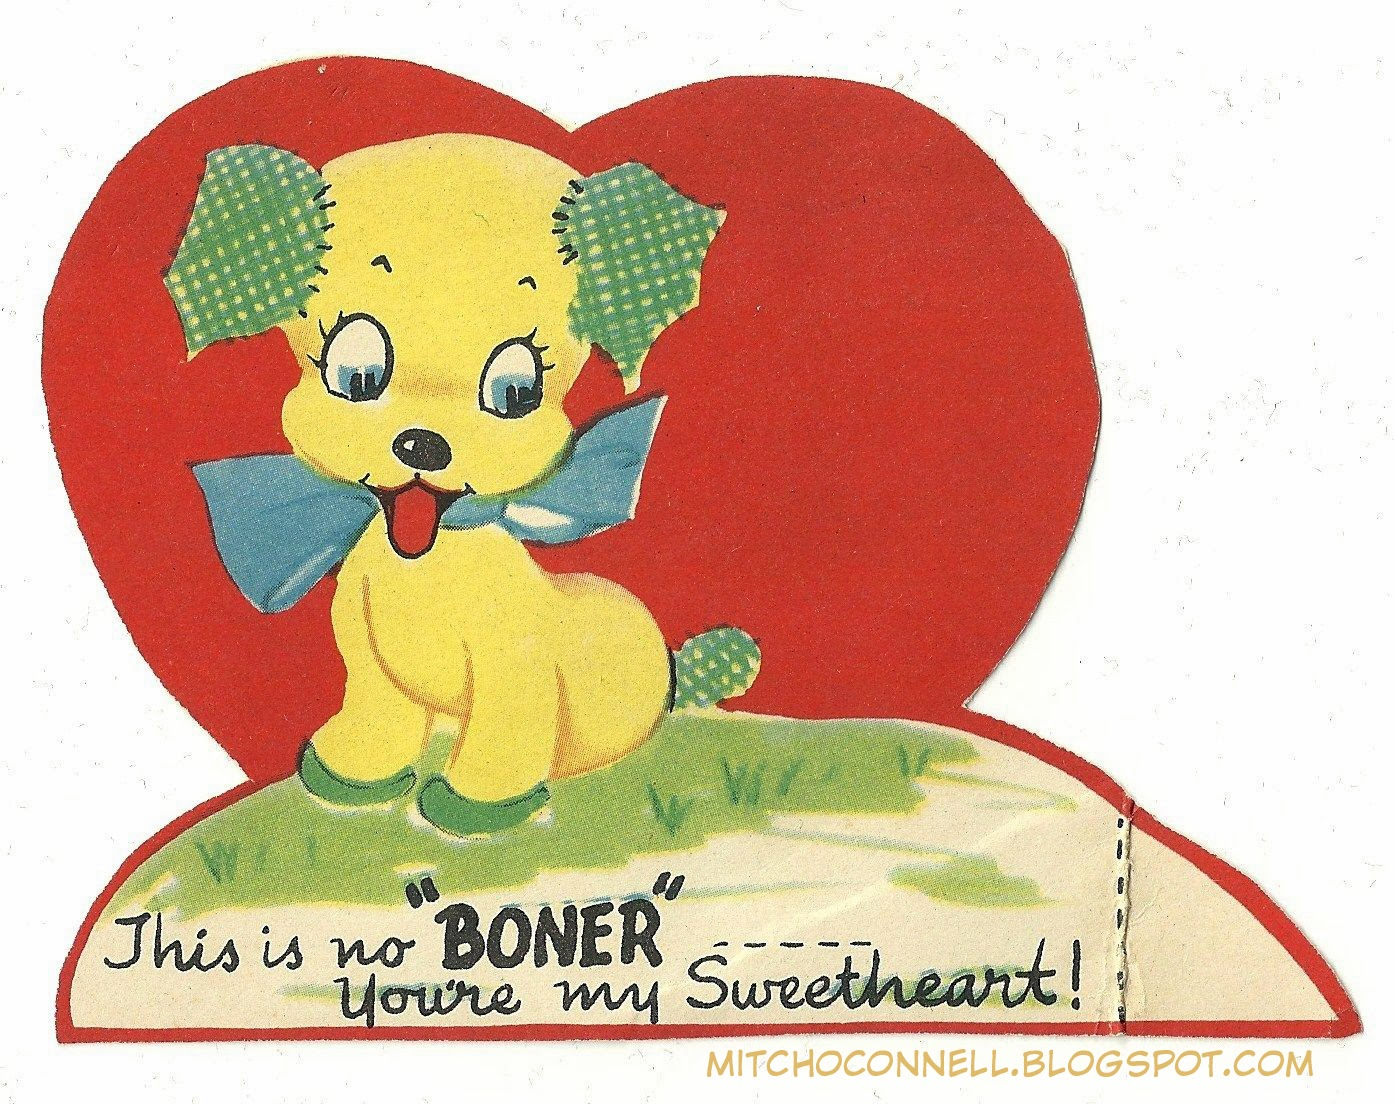 Strange double entendre vintage Valentines Day cards – Images of Vintage Valentine Cards